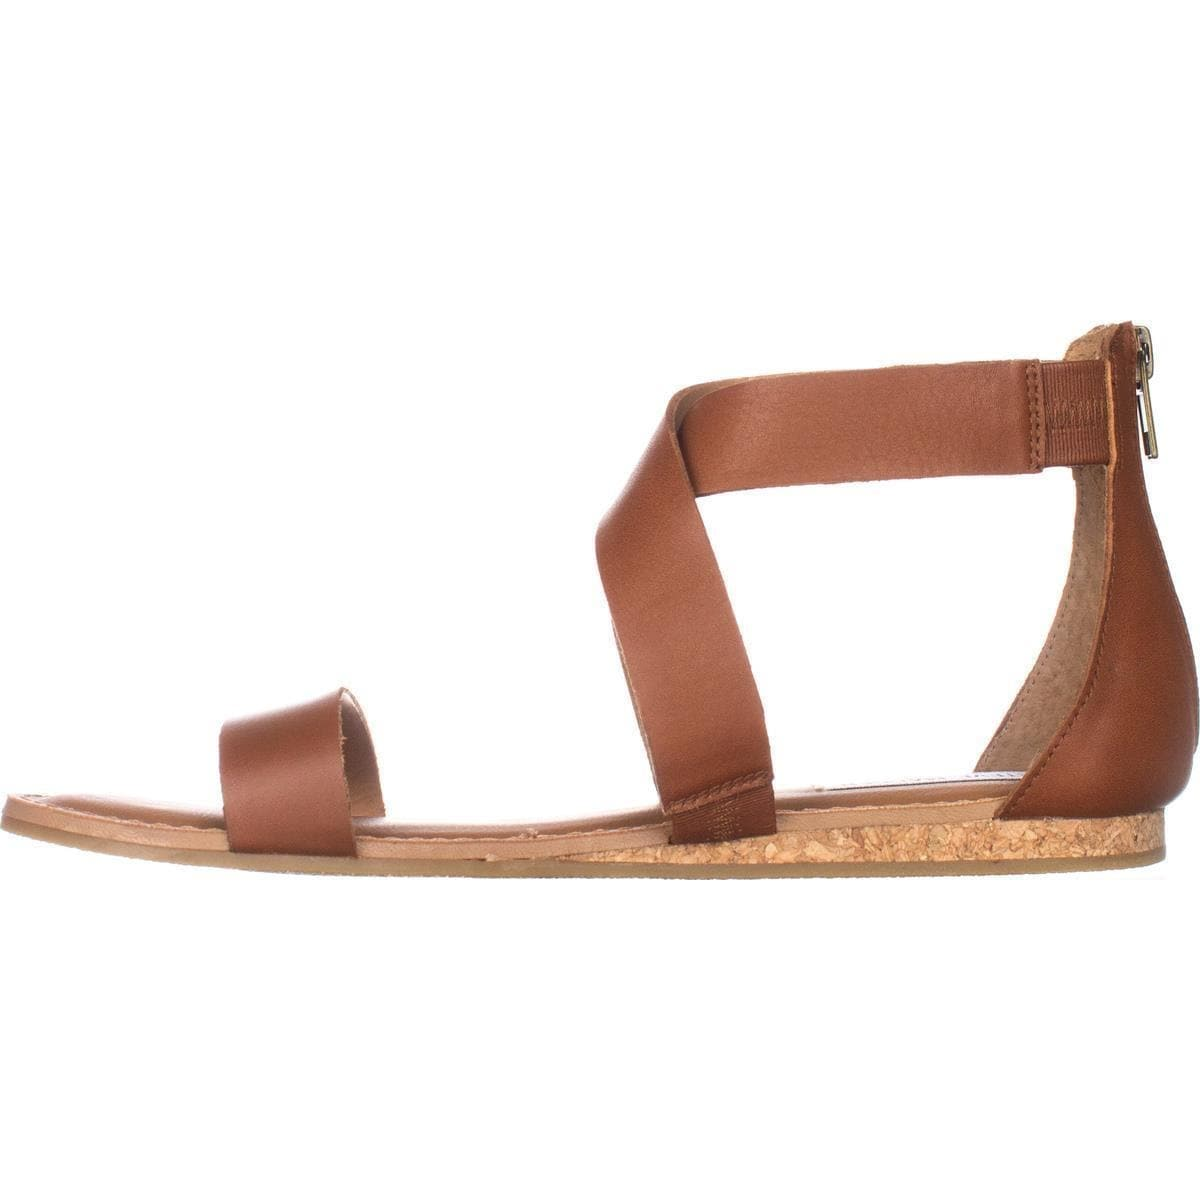 ad8f12ad17a0 Shop Steve Madden Halley Flat Sandals